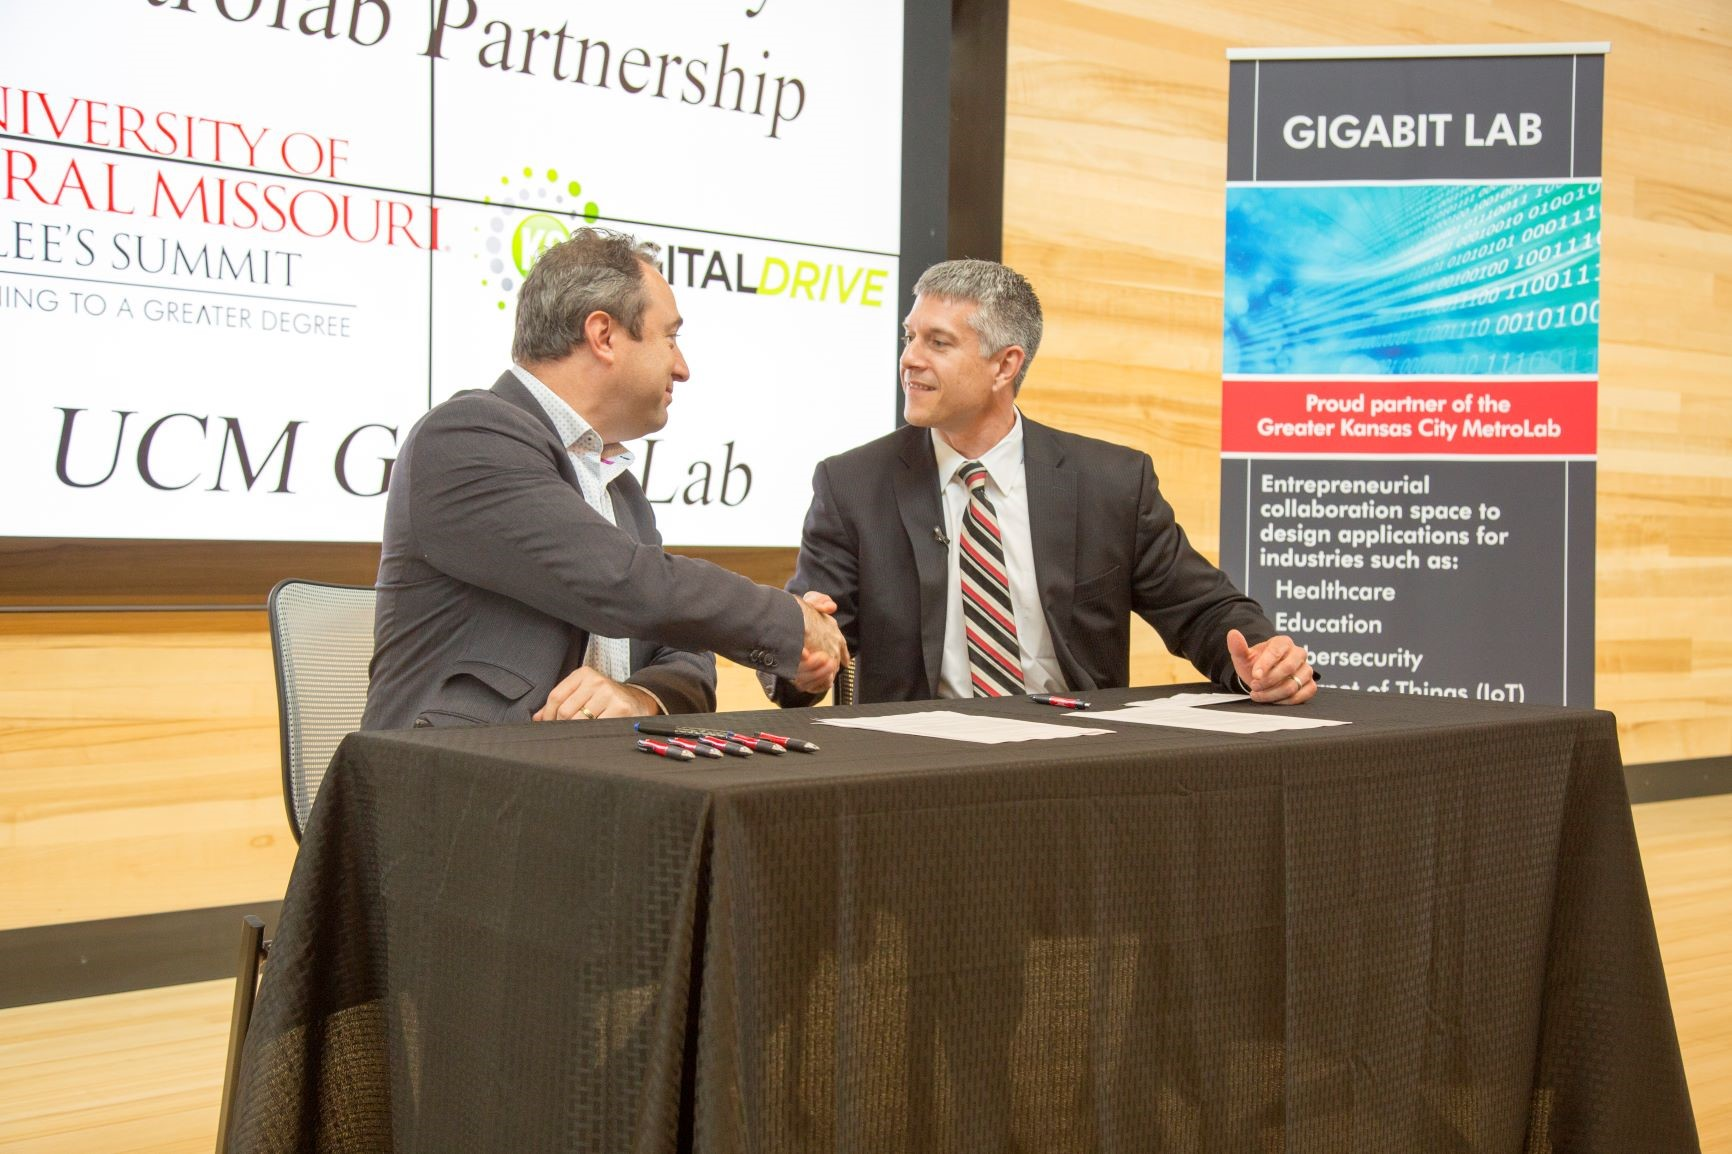 Aaron Deacon, left, managing director of KC Digital Drive, and Mike Godard, provost-chief learning officer for the University of Central Missouri, on Sept. 14 sign documents making possible UCM's participation in the Greater Kansas City MetroLab Partnership and the launching of a new Gigabit Lab at The Missouri Innovation Campus (MIC) in Lee's Summit.